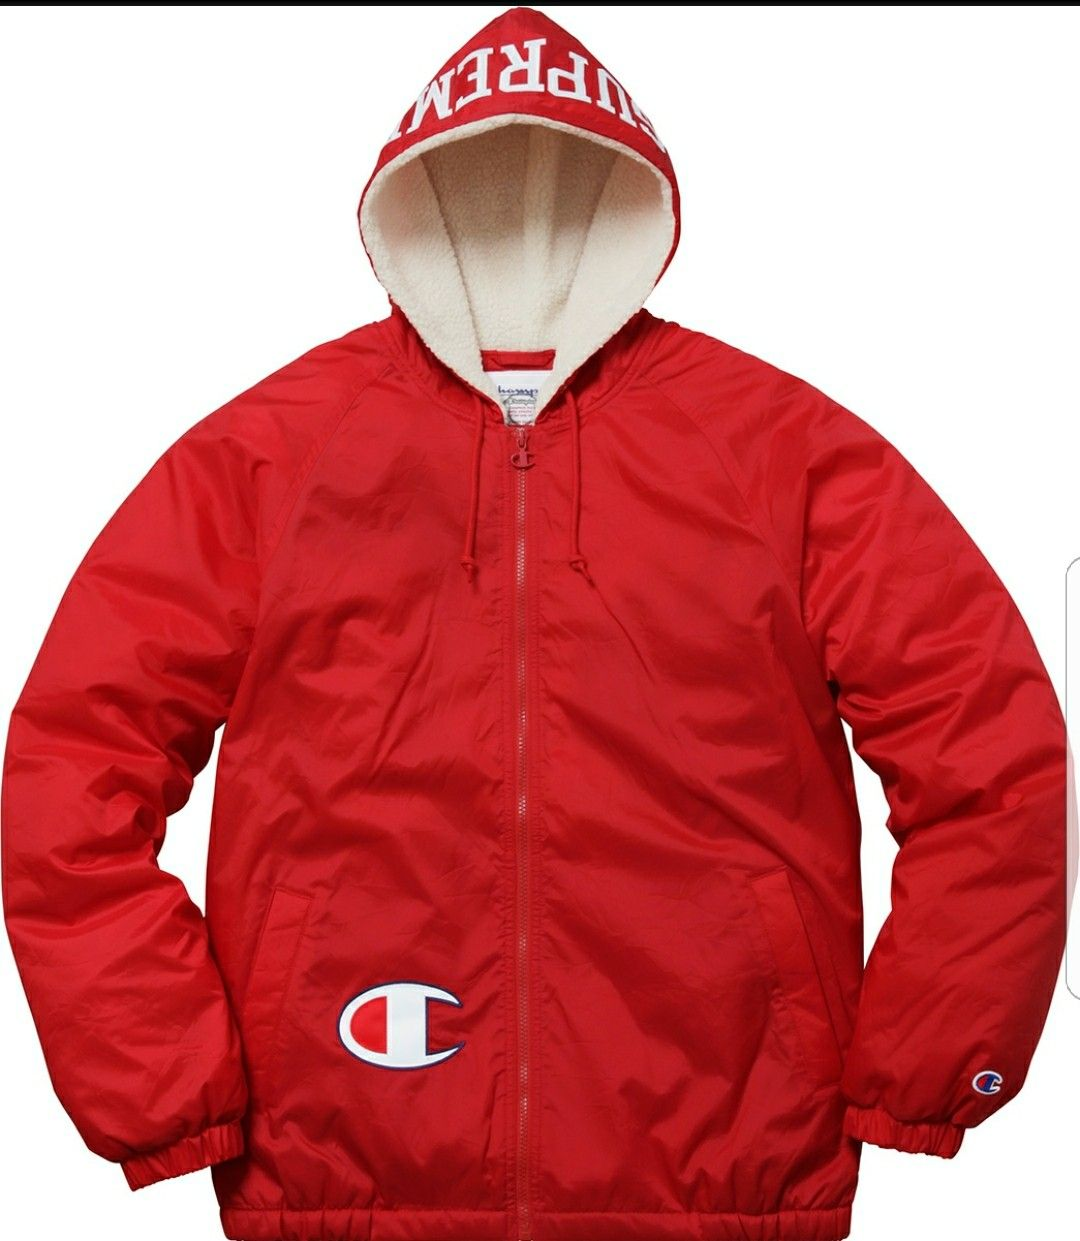 6d9221070 Supreme×Champion Hooded Jacket w Sherpa lining Red | Lasmooove ...